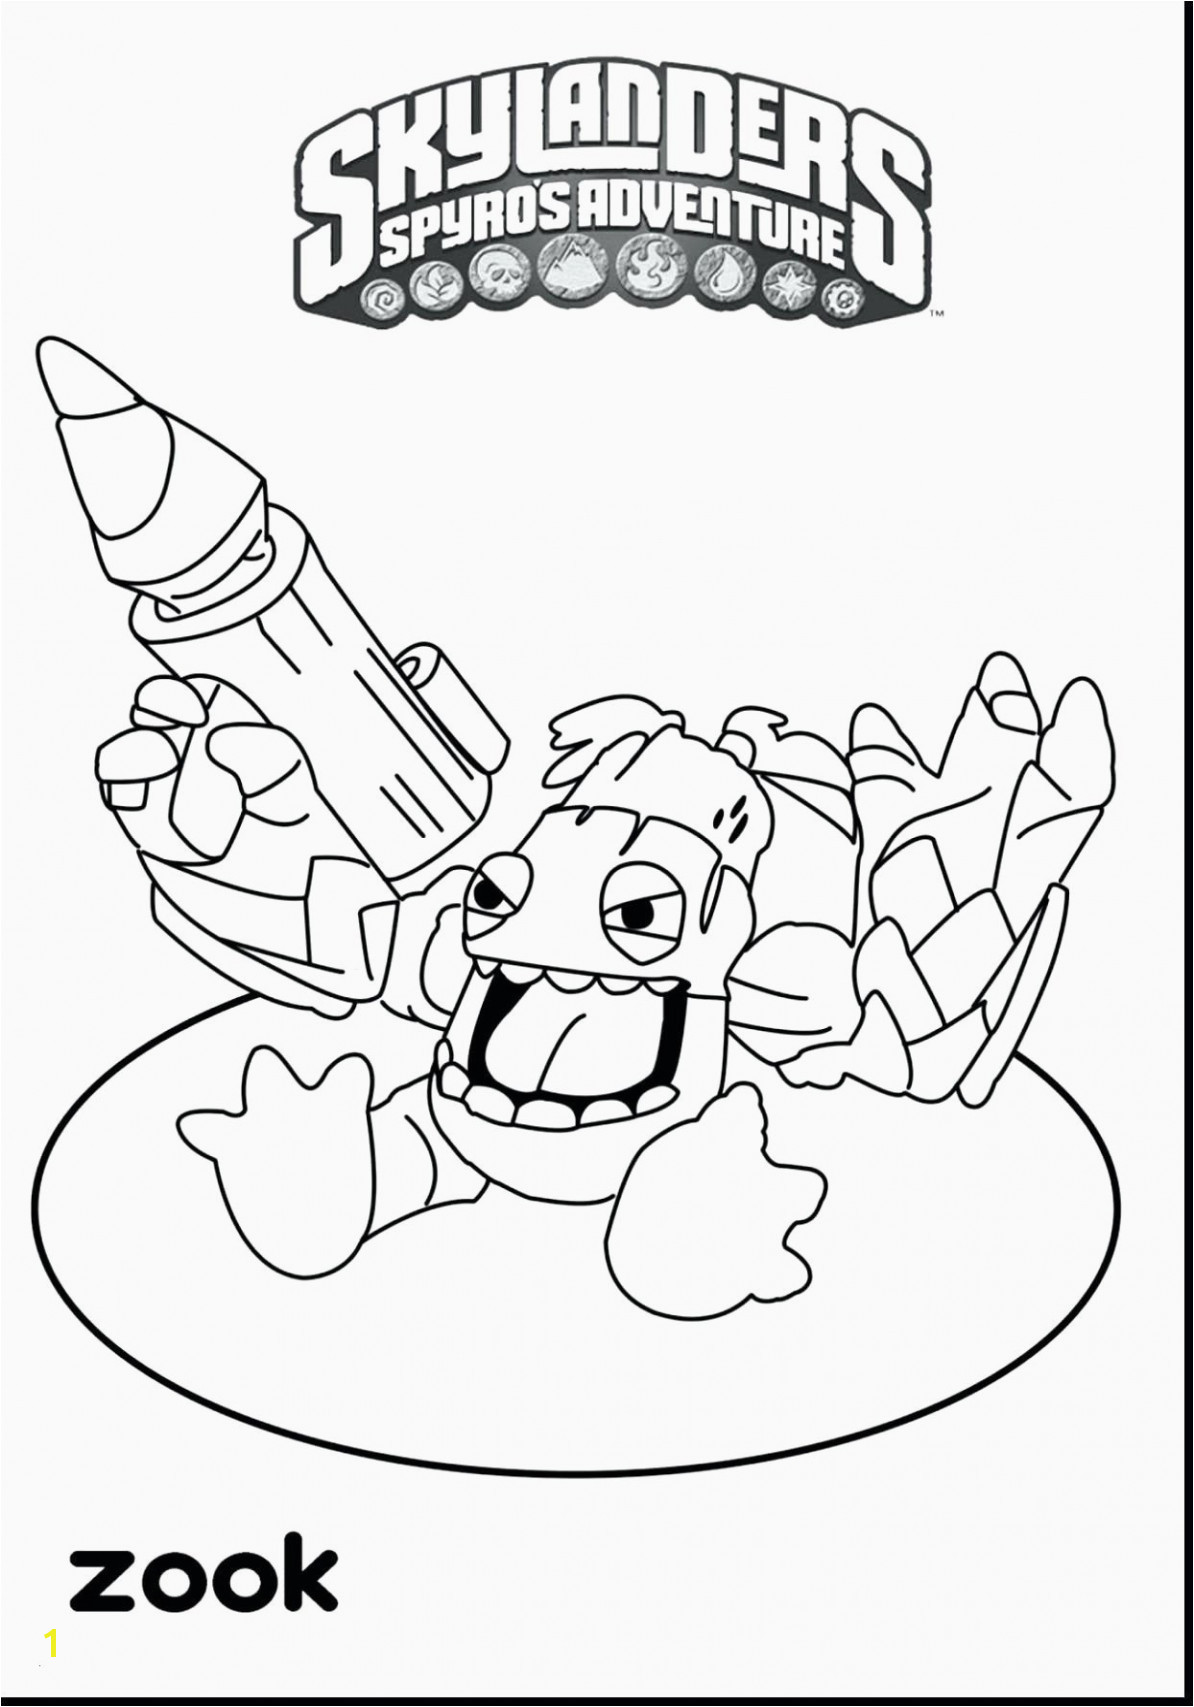 Santa Claus And Reindeer Coloring Pages Santa Claus His Sleigh Coloring Pages Santa Claus Coloring Pages